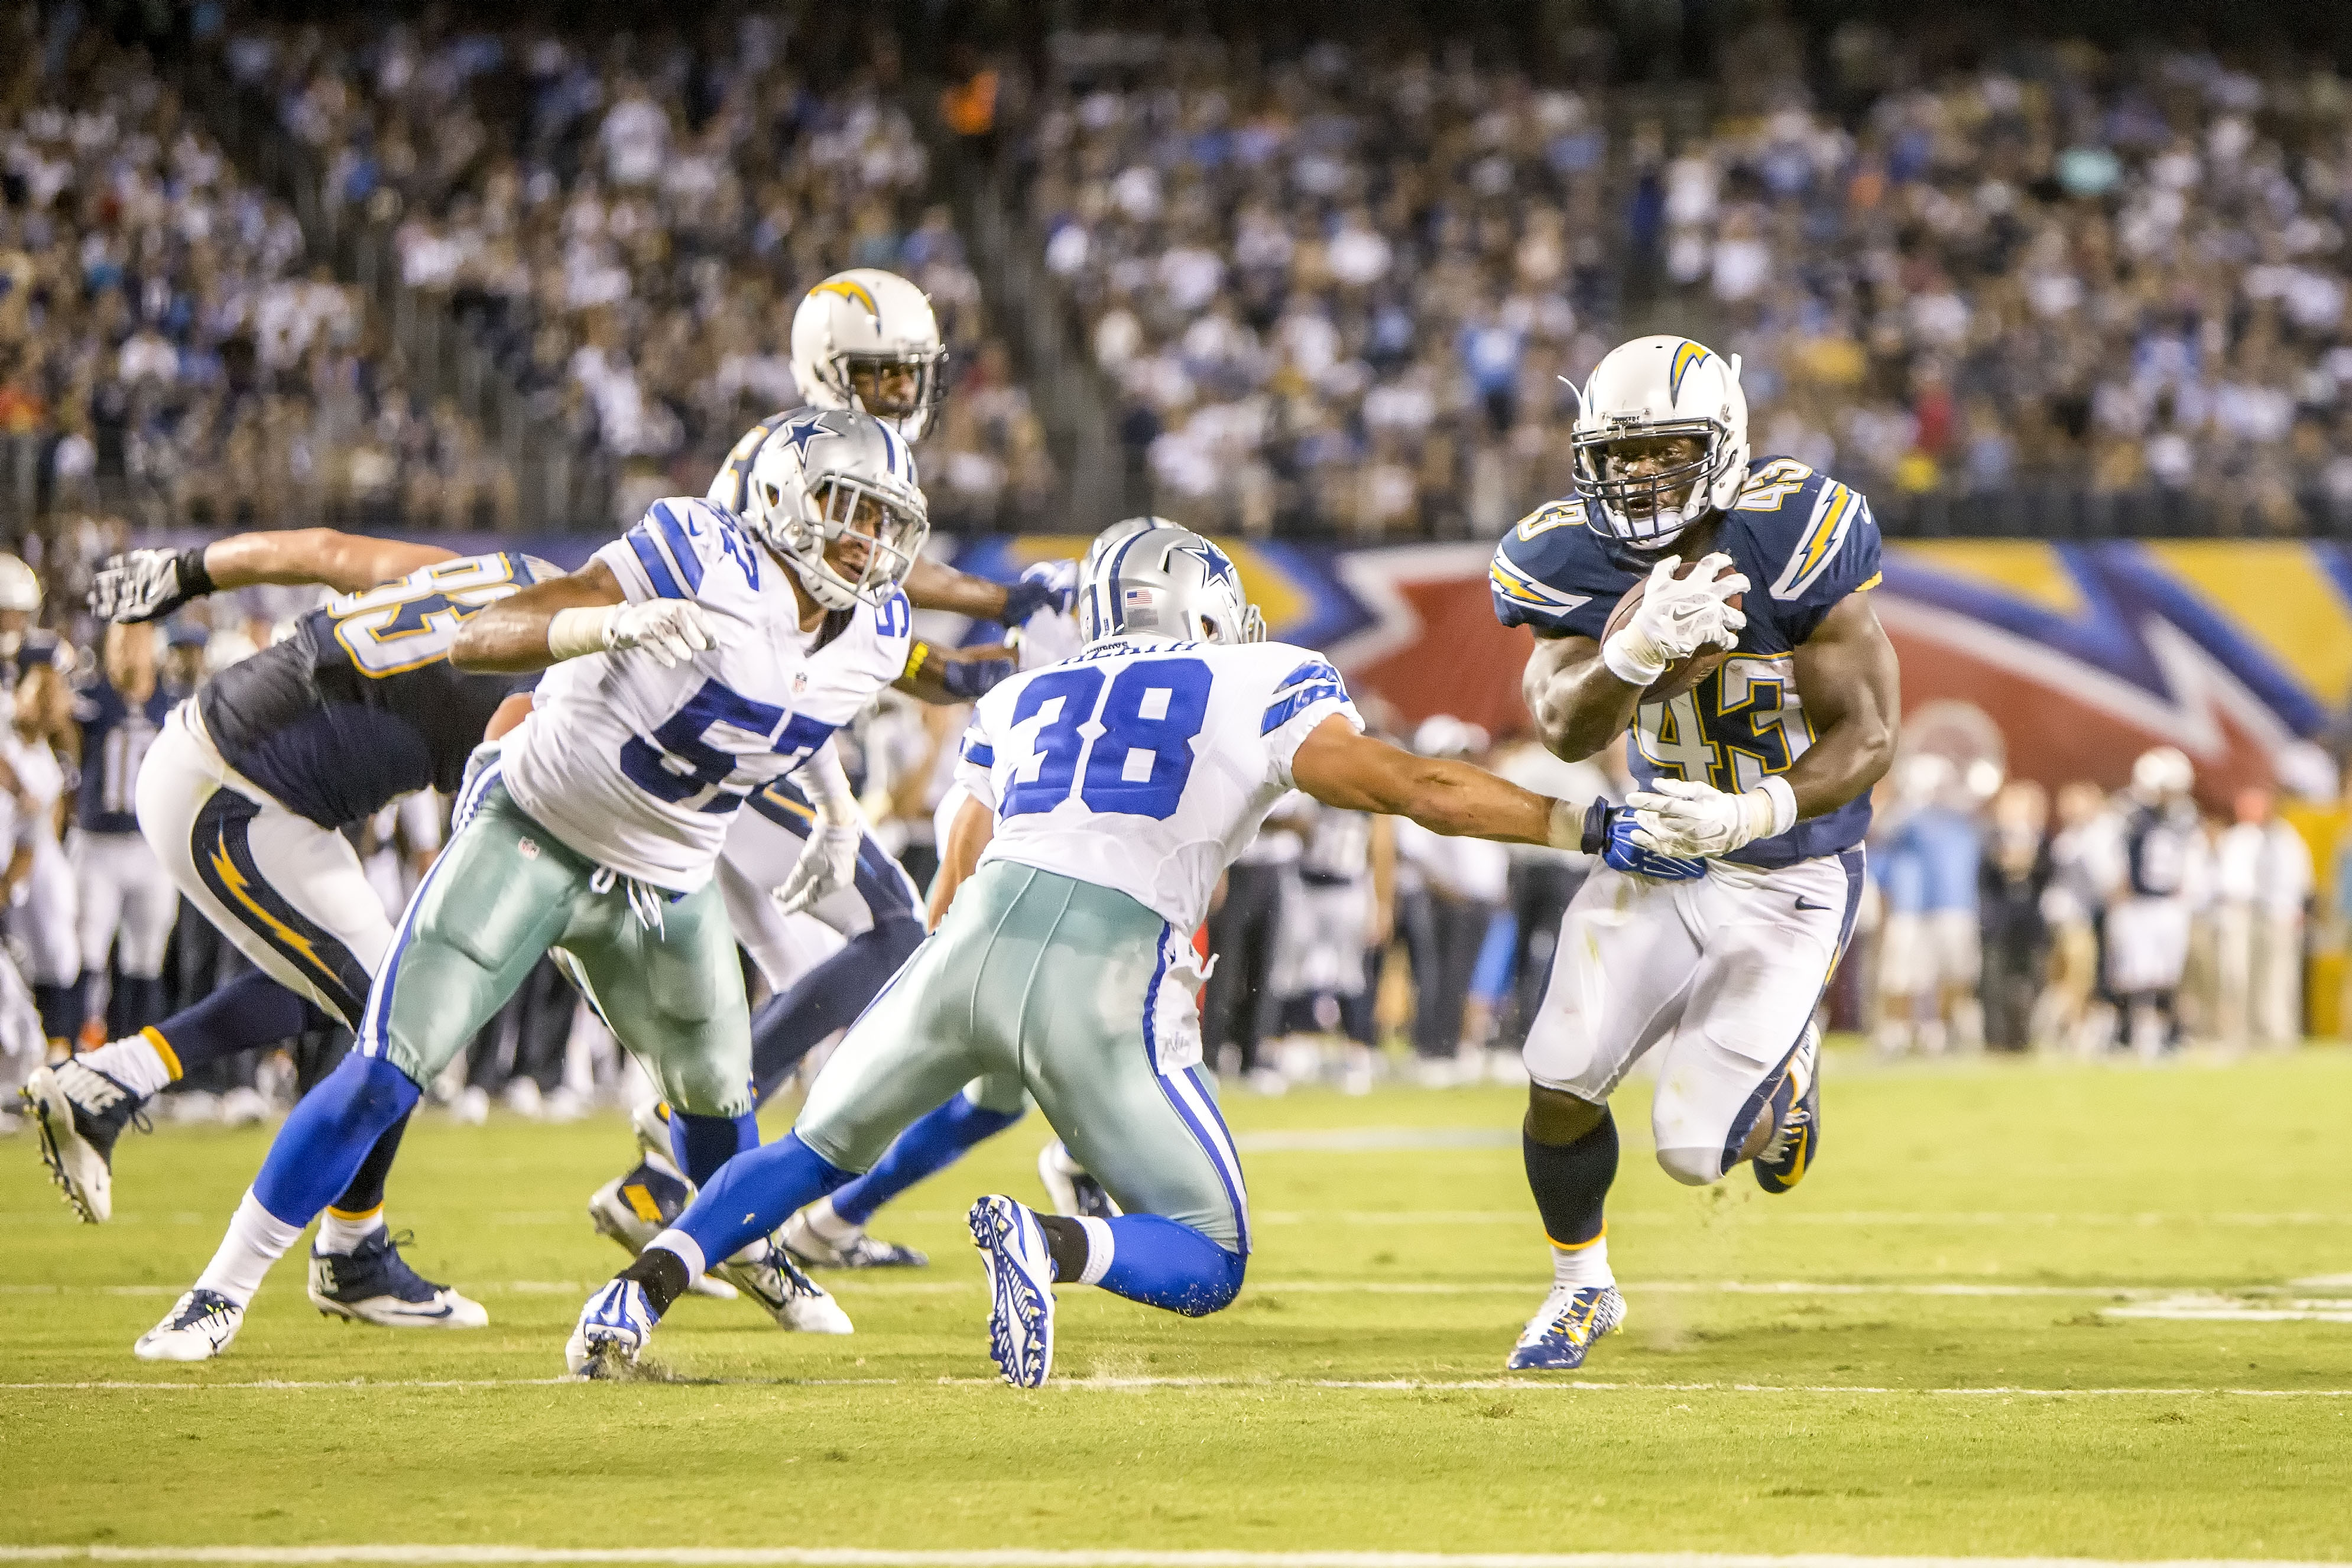 San Diego Chargers running back Brandon Oliver scores a touchdown in the second quarter of the game. Photo by Bill Reilly